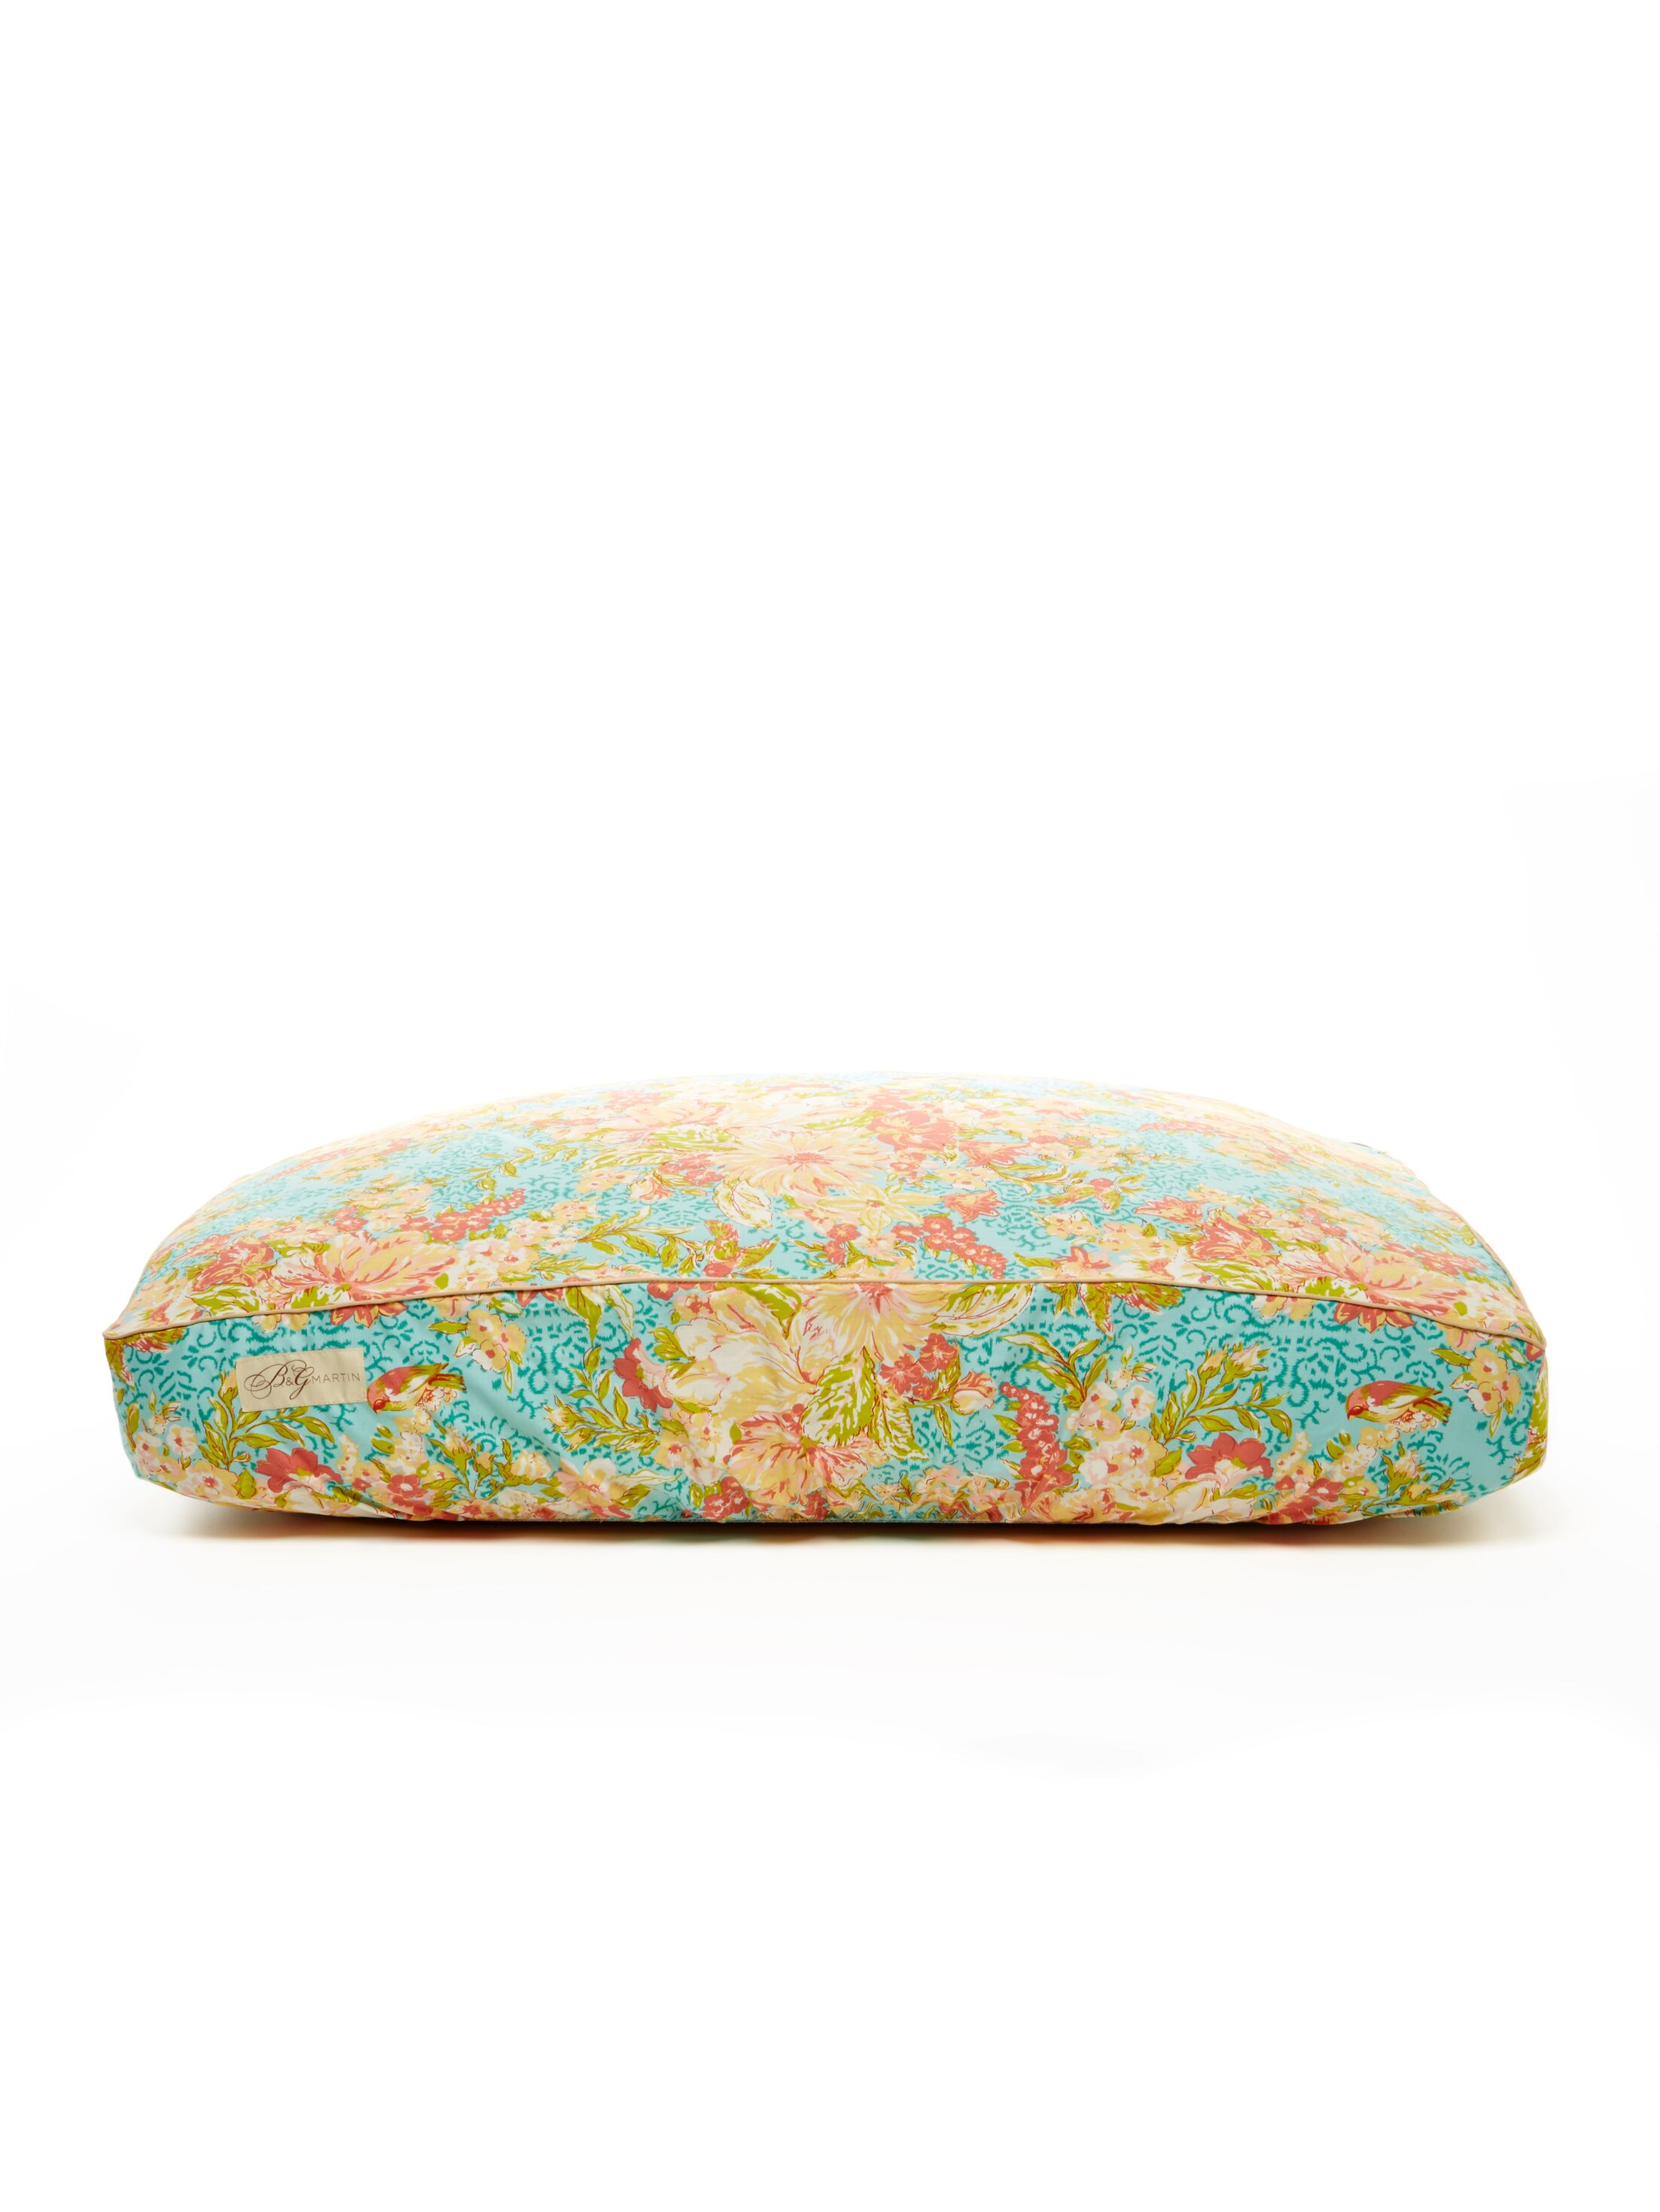 Deluxe Floral Dog Bed Cover Size: Small (18